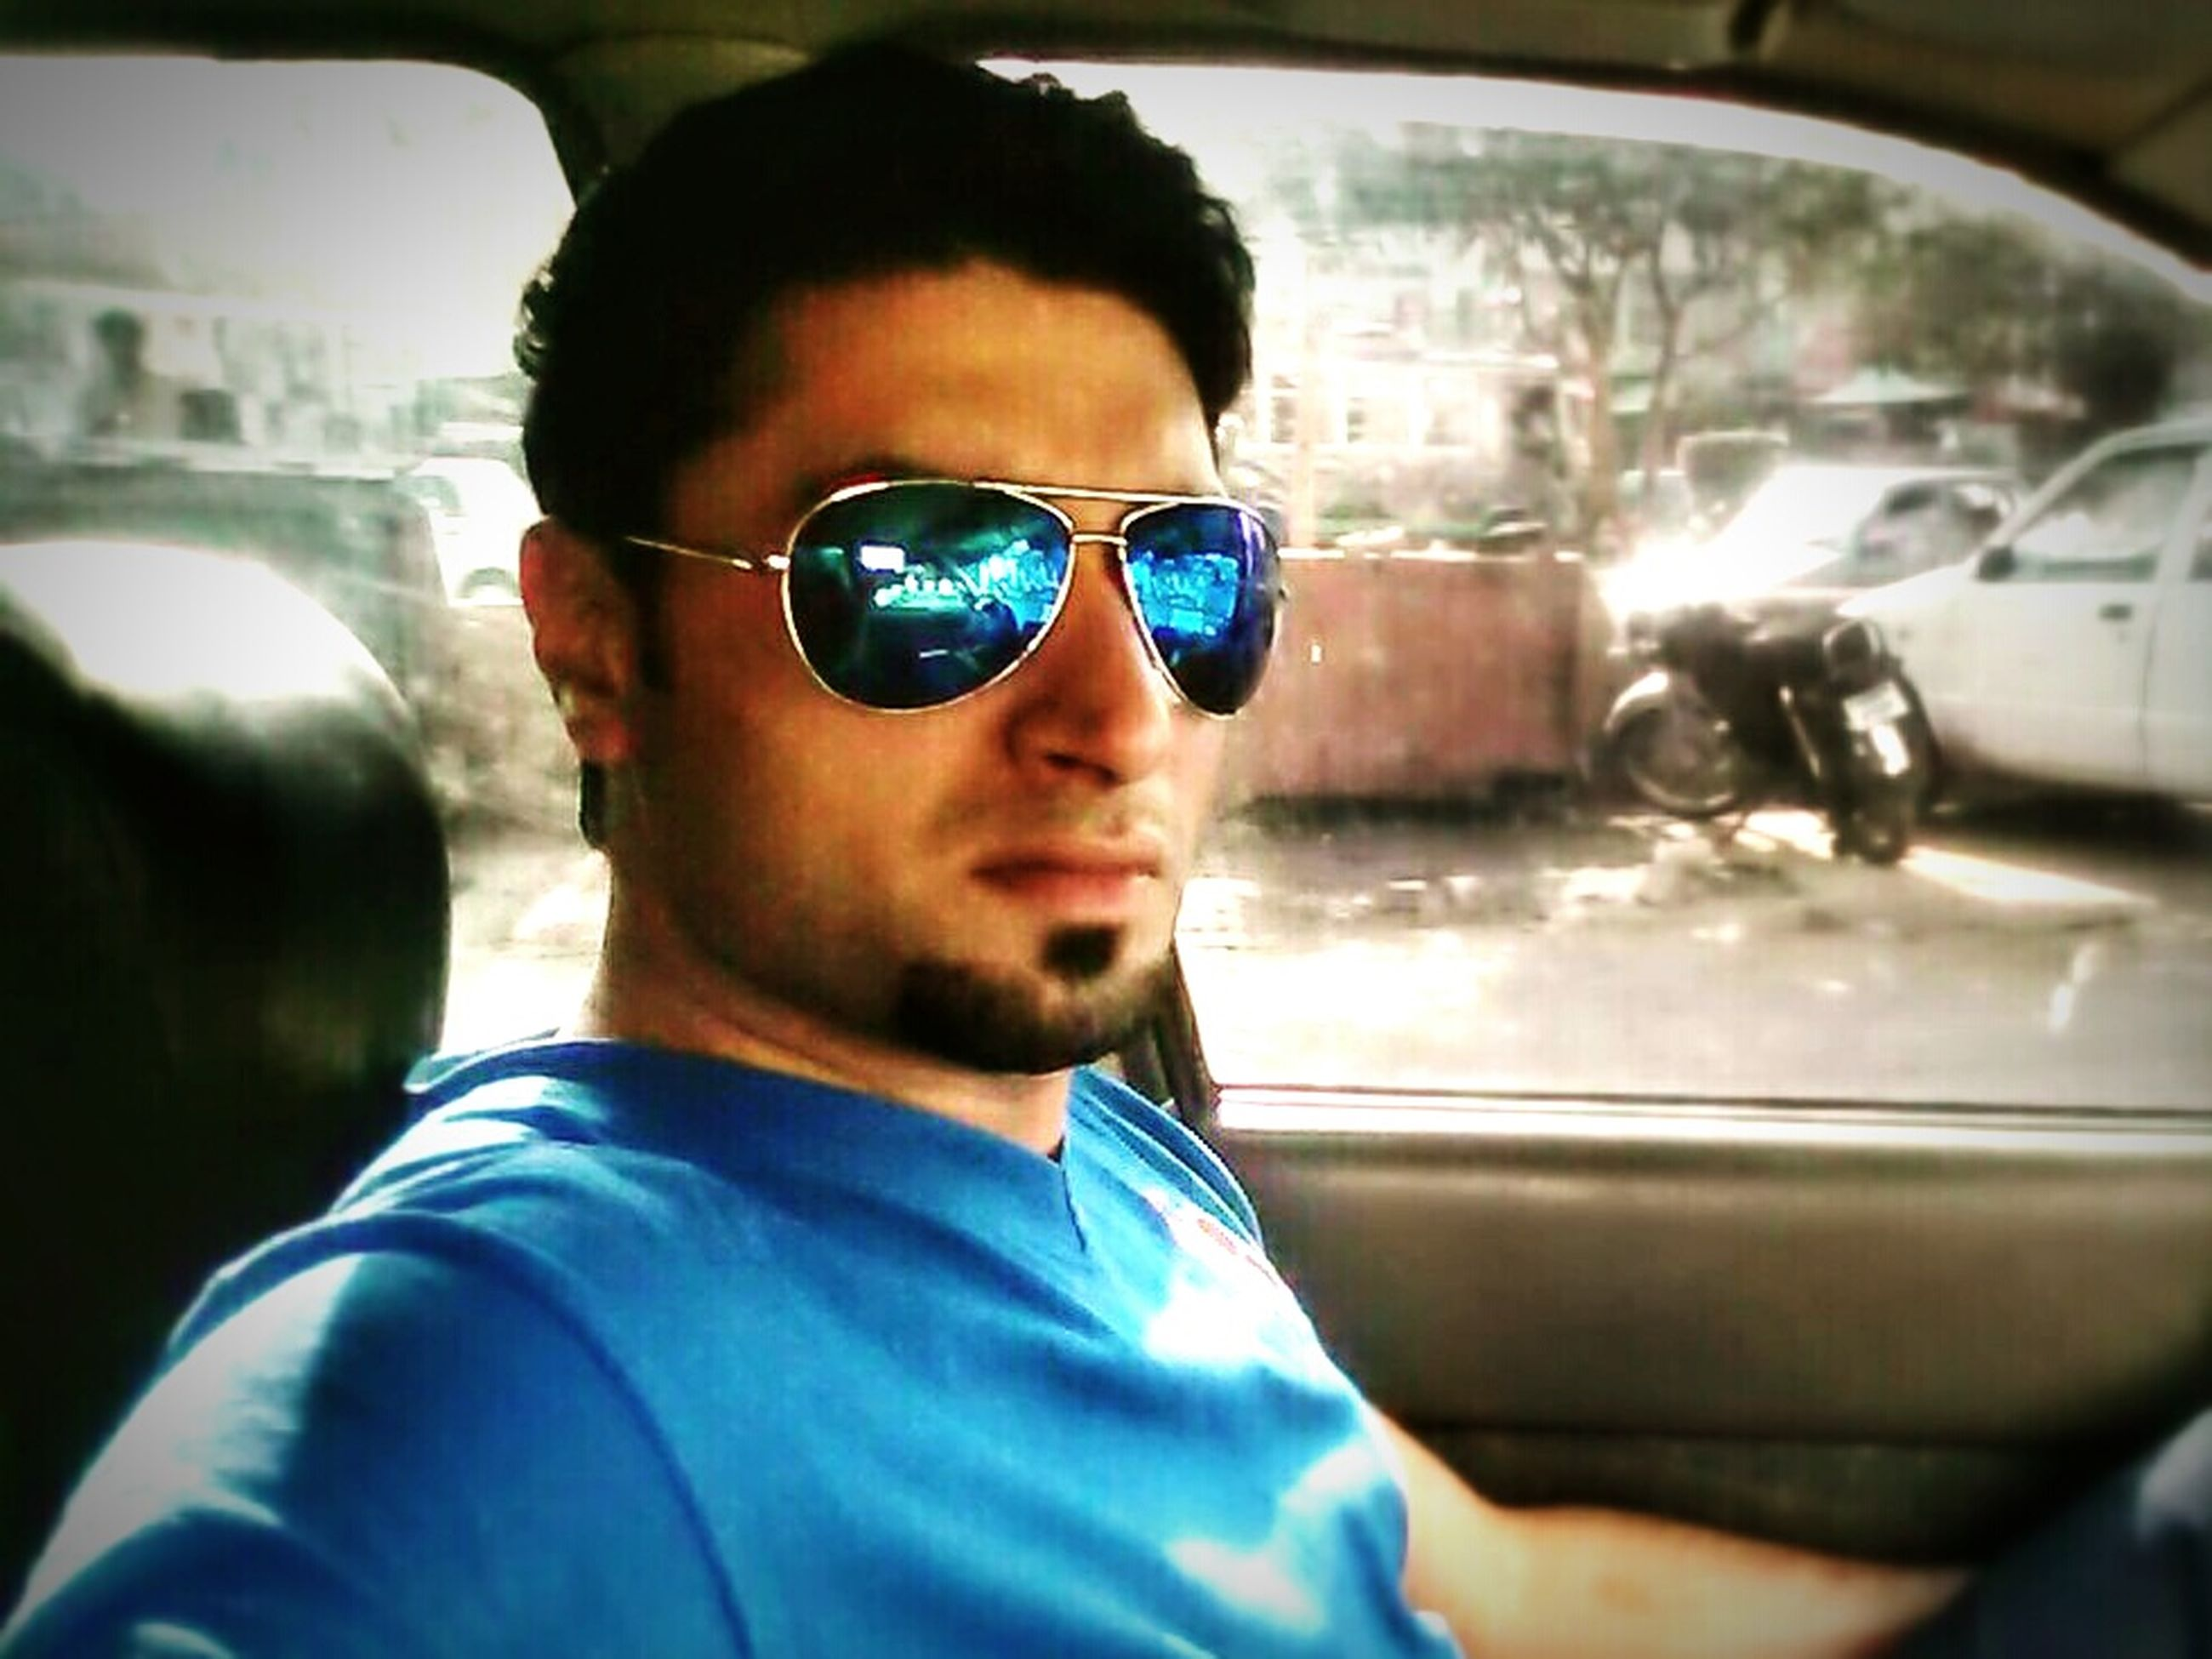 lifestyles, transportation, car, headshot, mode of transport, person, land vehicle, focus on foreground, close-up, leisure activity, sunglasses, portrait, looking at camera, front view, head and shoulders, young men, vehicle interior, reflection